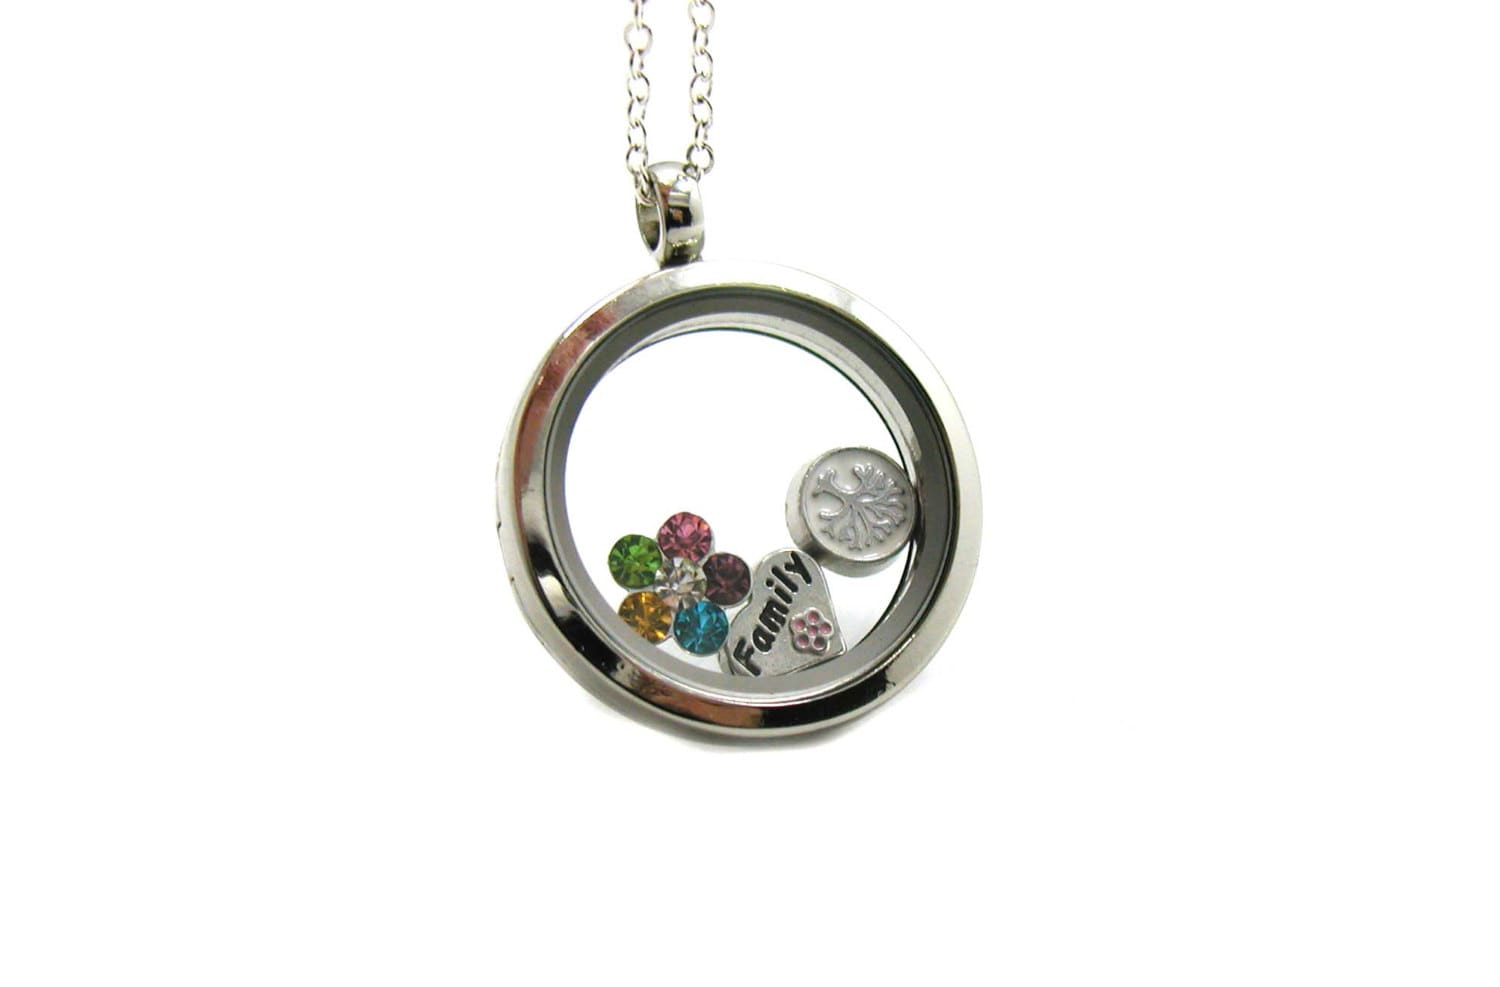 necklace necklaces amazon bamboo dp charming clearly charm floating with com locket pendant lockets chain round jewelry